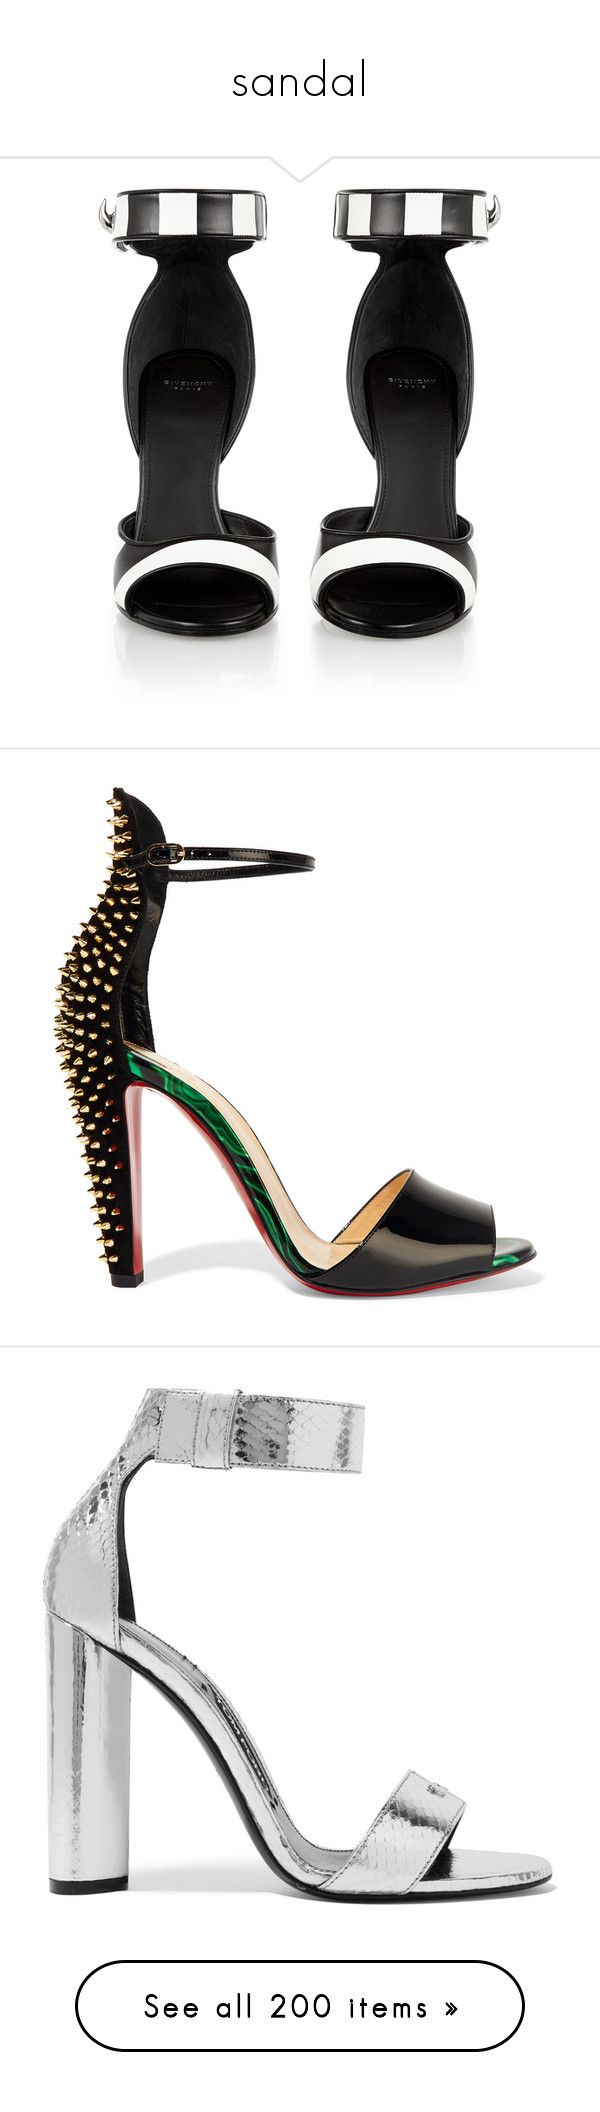 """""""sandal"""" by iriskatarina ❤ liked on Polyvore featuring shoes, sandals, heels, black and white striped shoes, high heel shoes, black and white shoes, ankle strap sandals, ankle wrap sandals, christian louboutin and louboutin"""